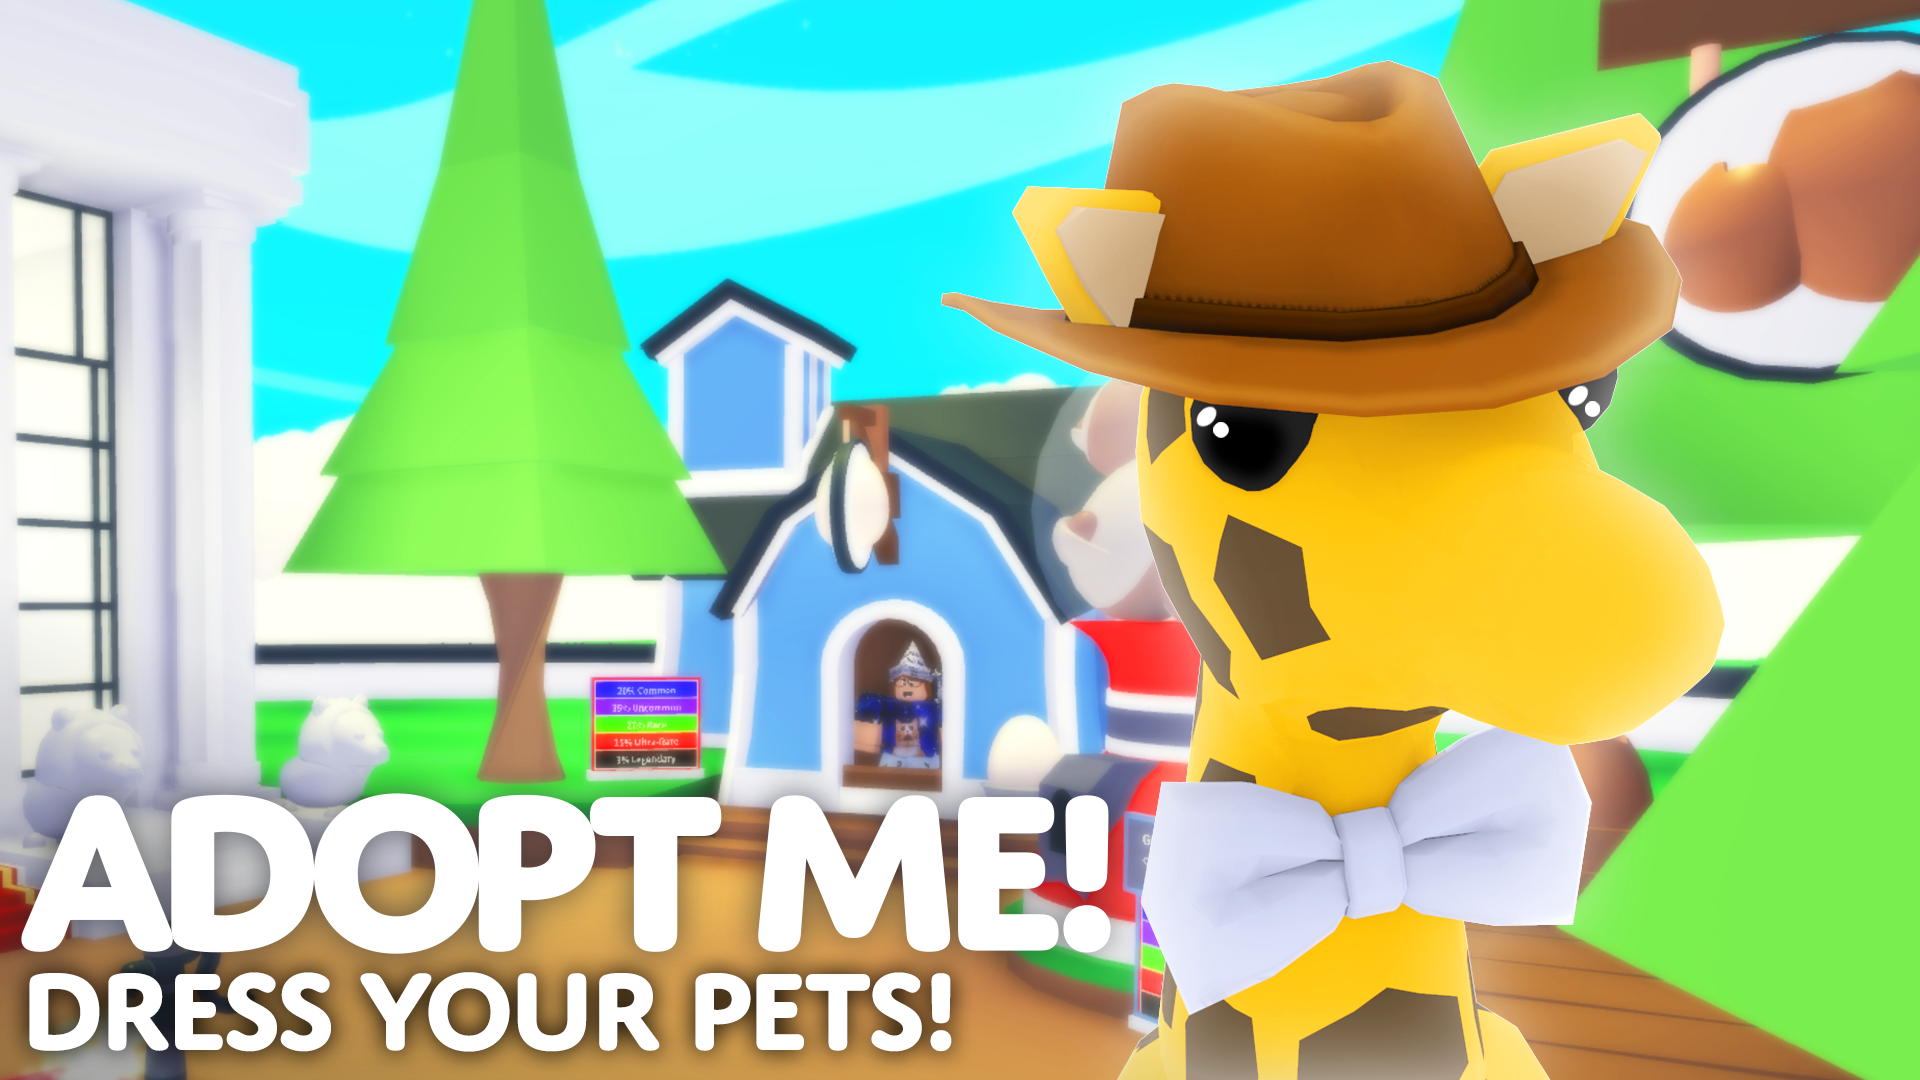 Dress Your Pets in Adopt Me!